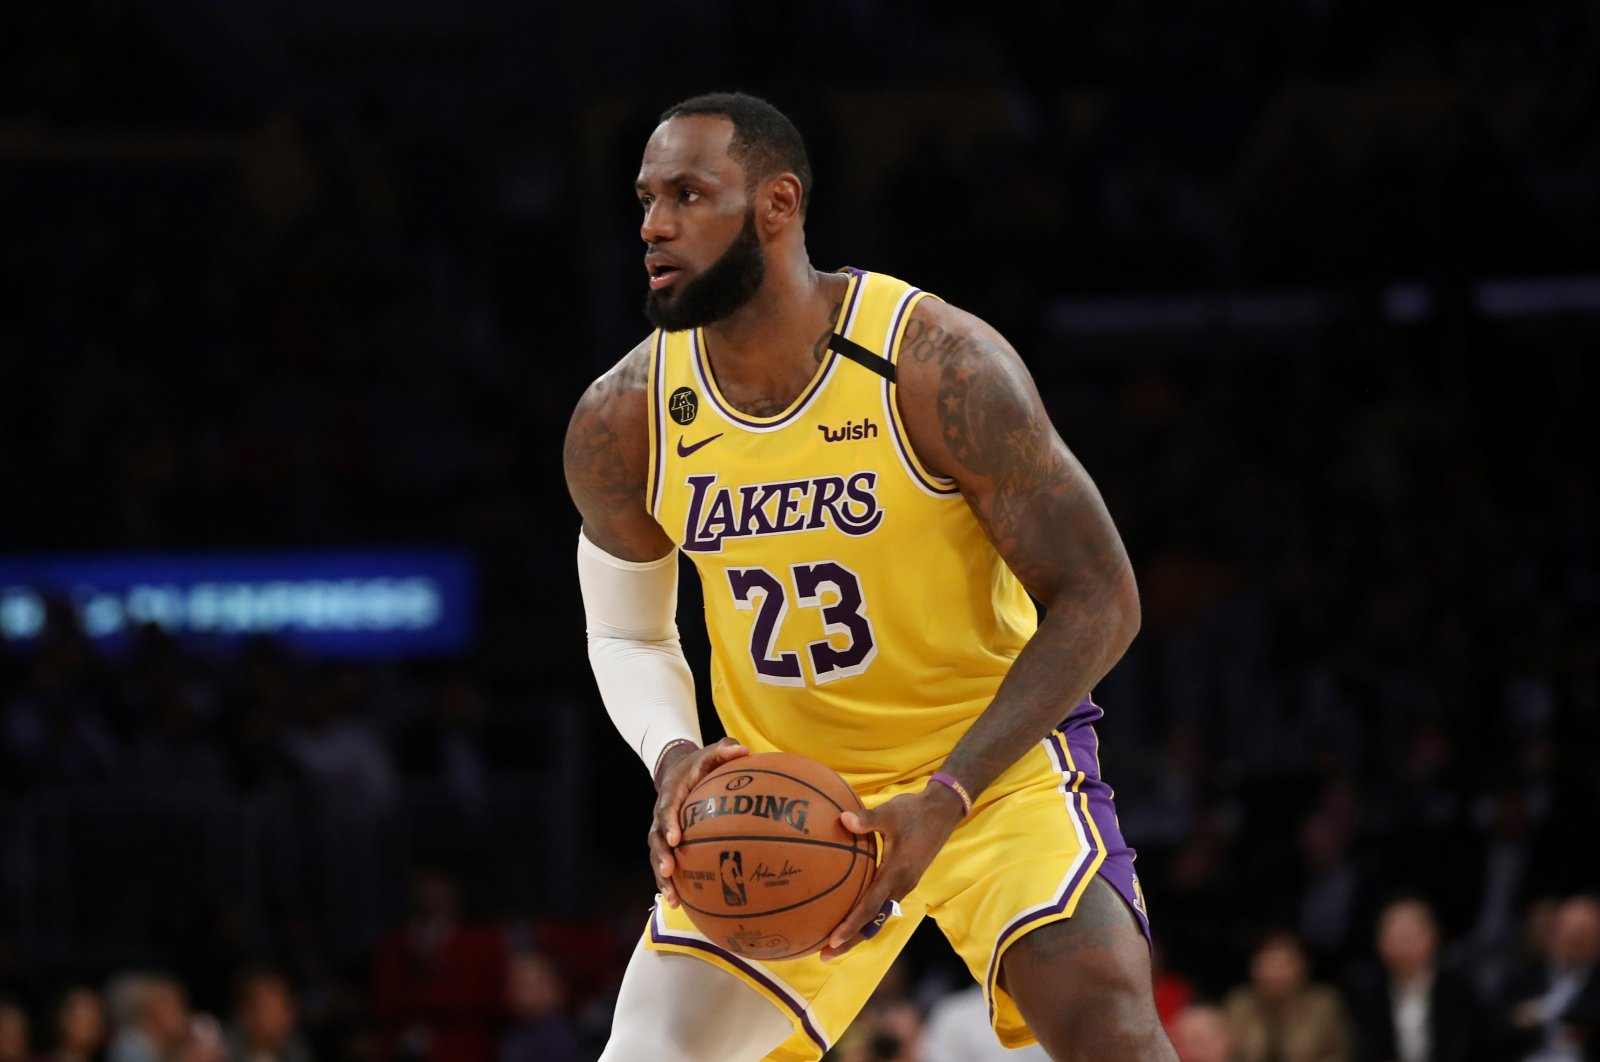 Los Angeles Lakers' LeBron James handles the ball in a game against the Philadelphia 76ers in Los Angeles, California, U.S., March 3, 2020. (AFP Photo)